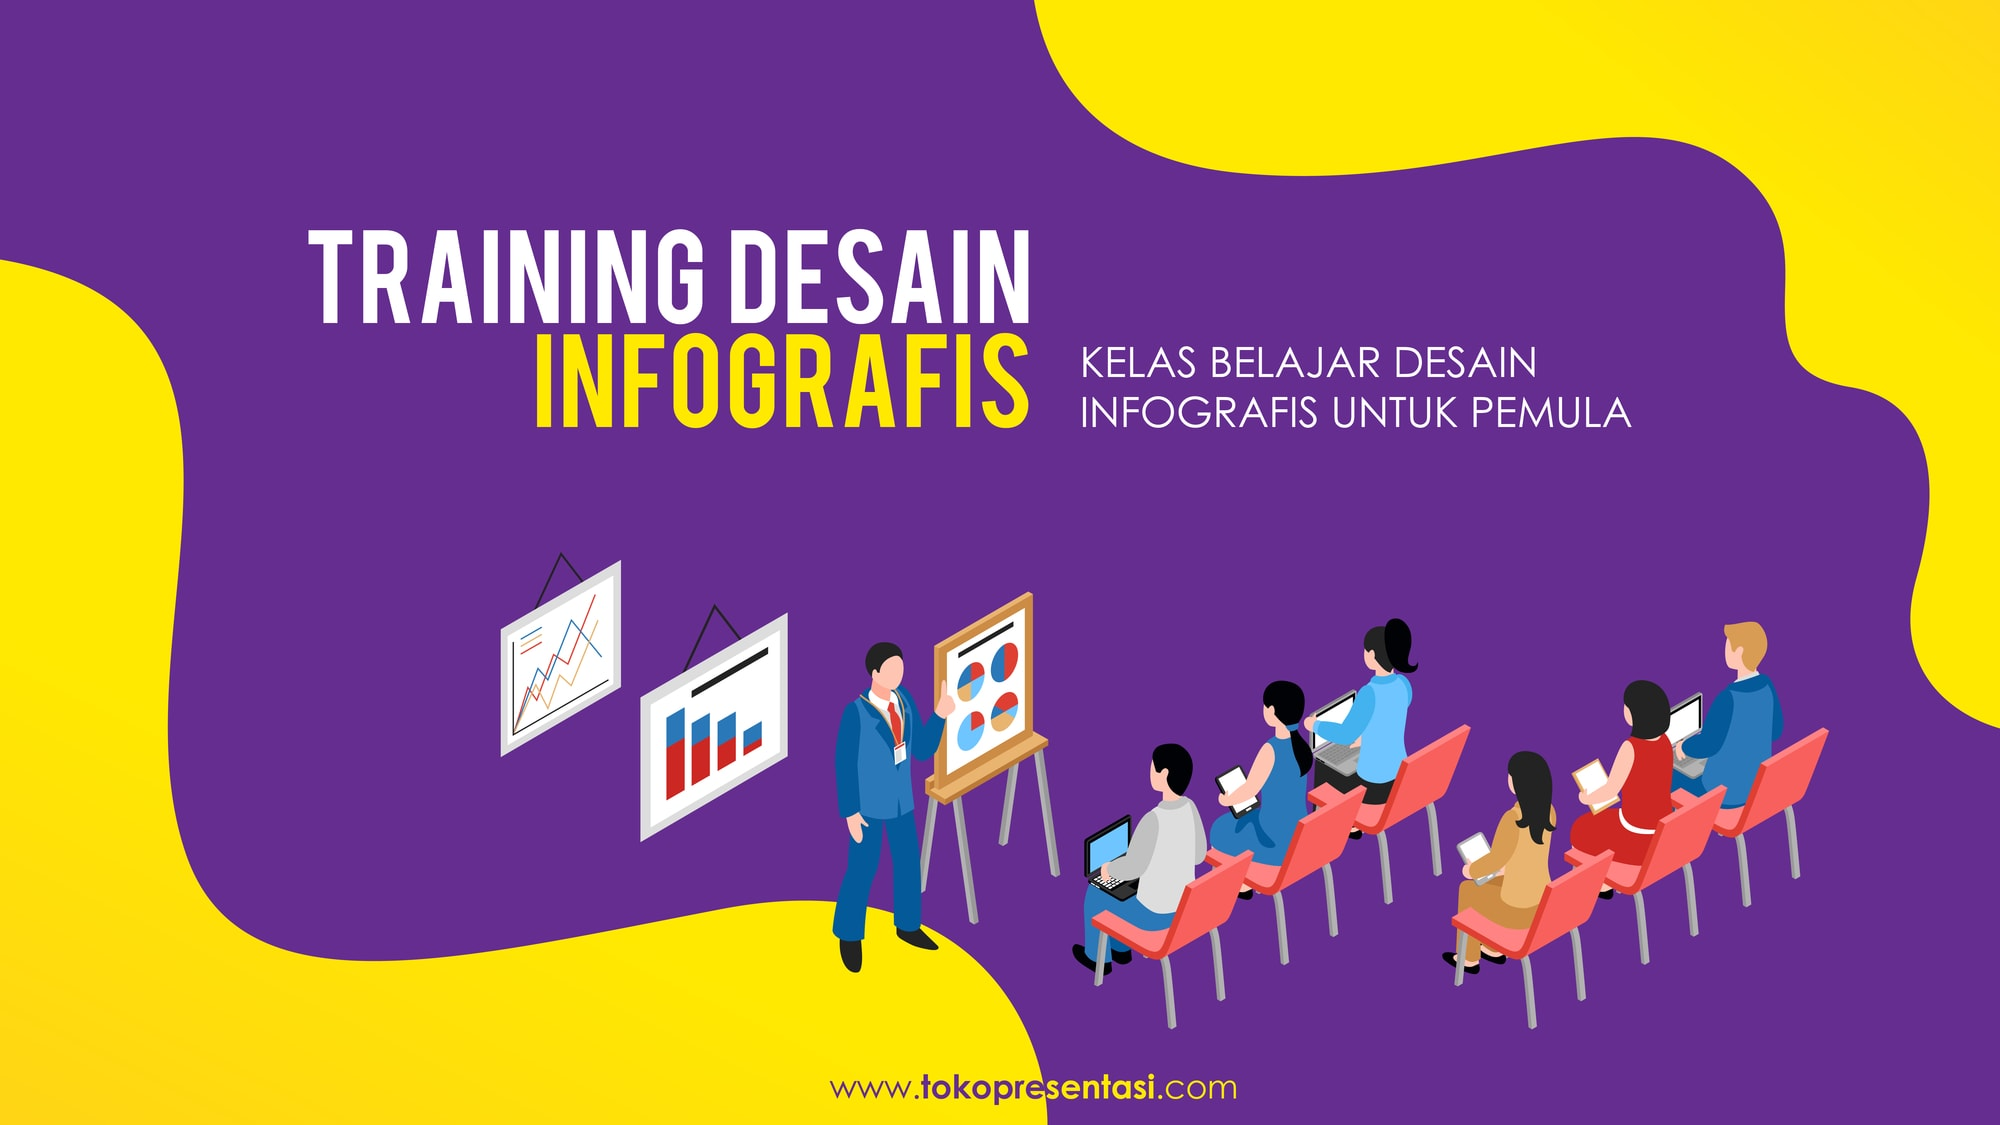 Pelatihan Training Desain Infografis PPT Corporate University Pan Brothers Tokopresentasi